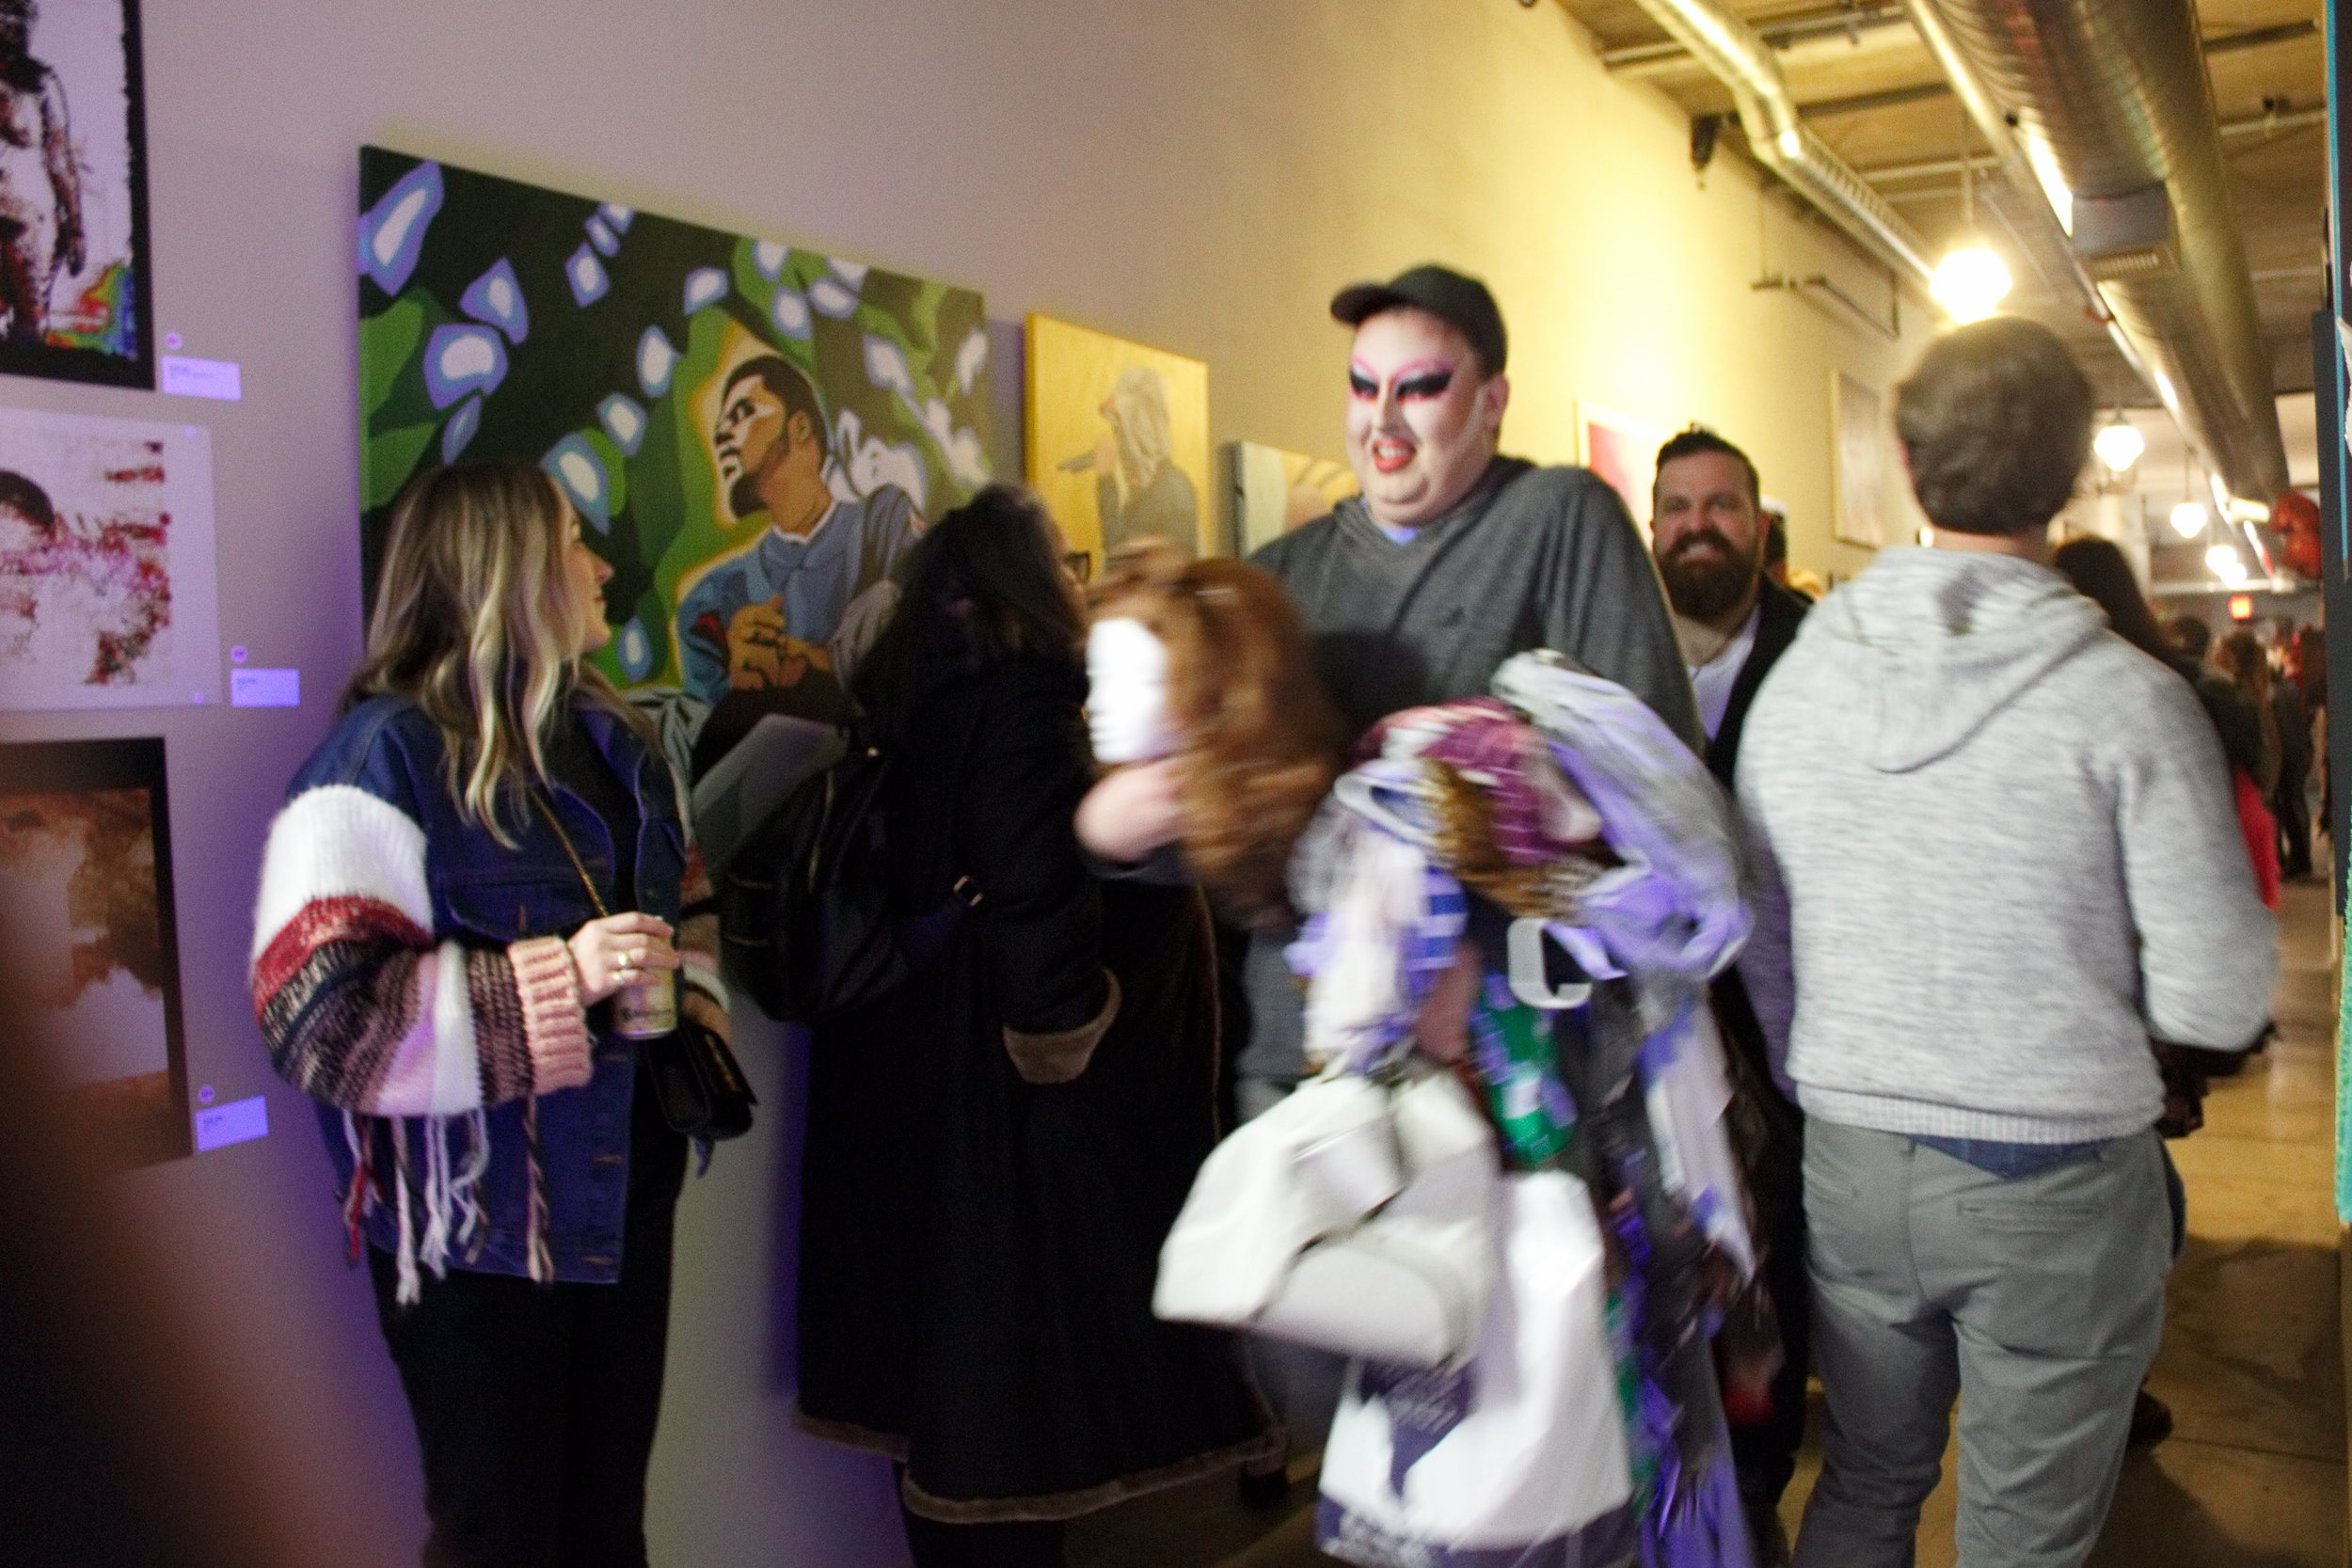 Host Mark Mayr scurries through, wardrobe in hand, Nick McClanahan of House of Iconoclasts following closely behind